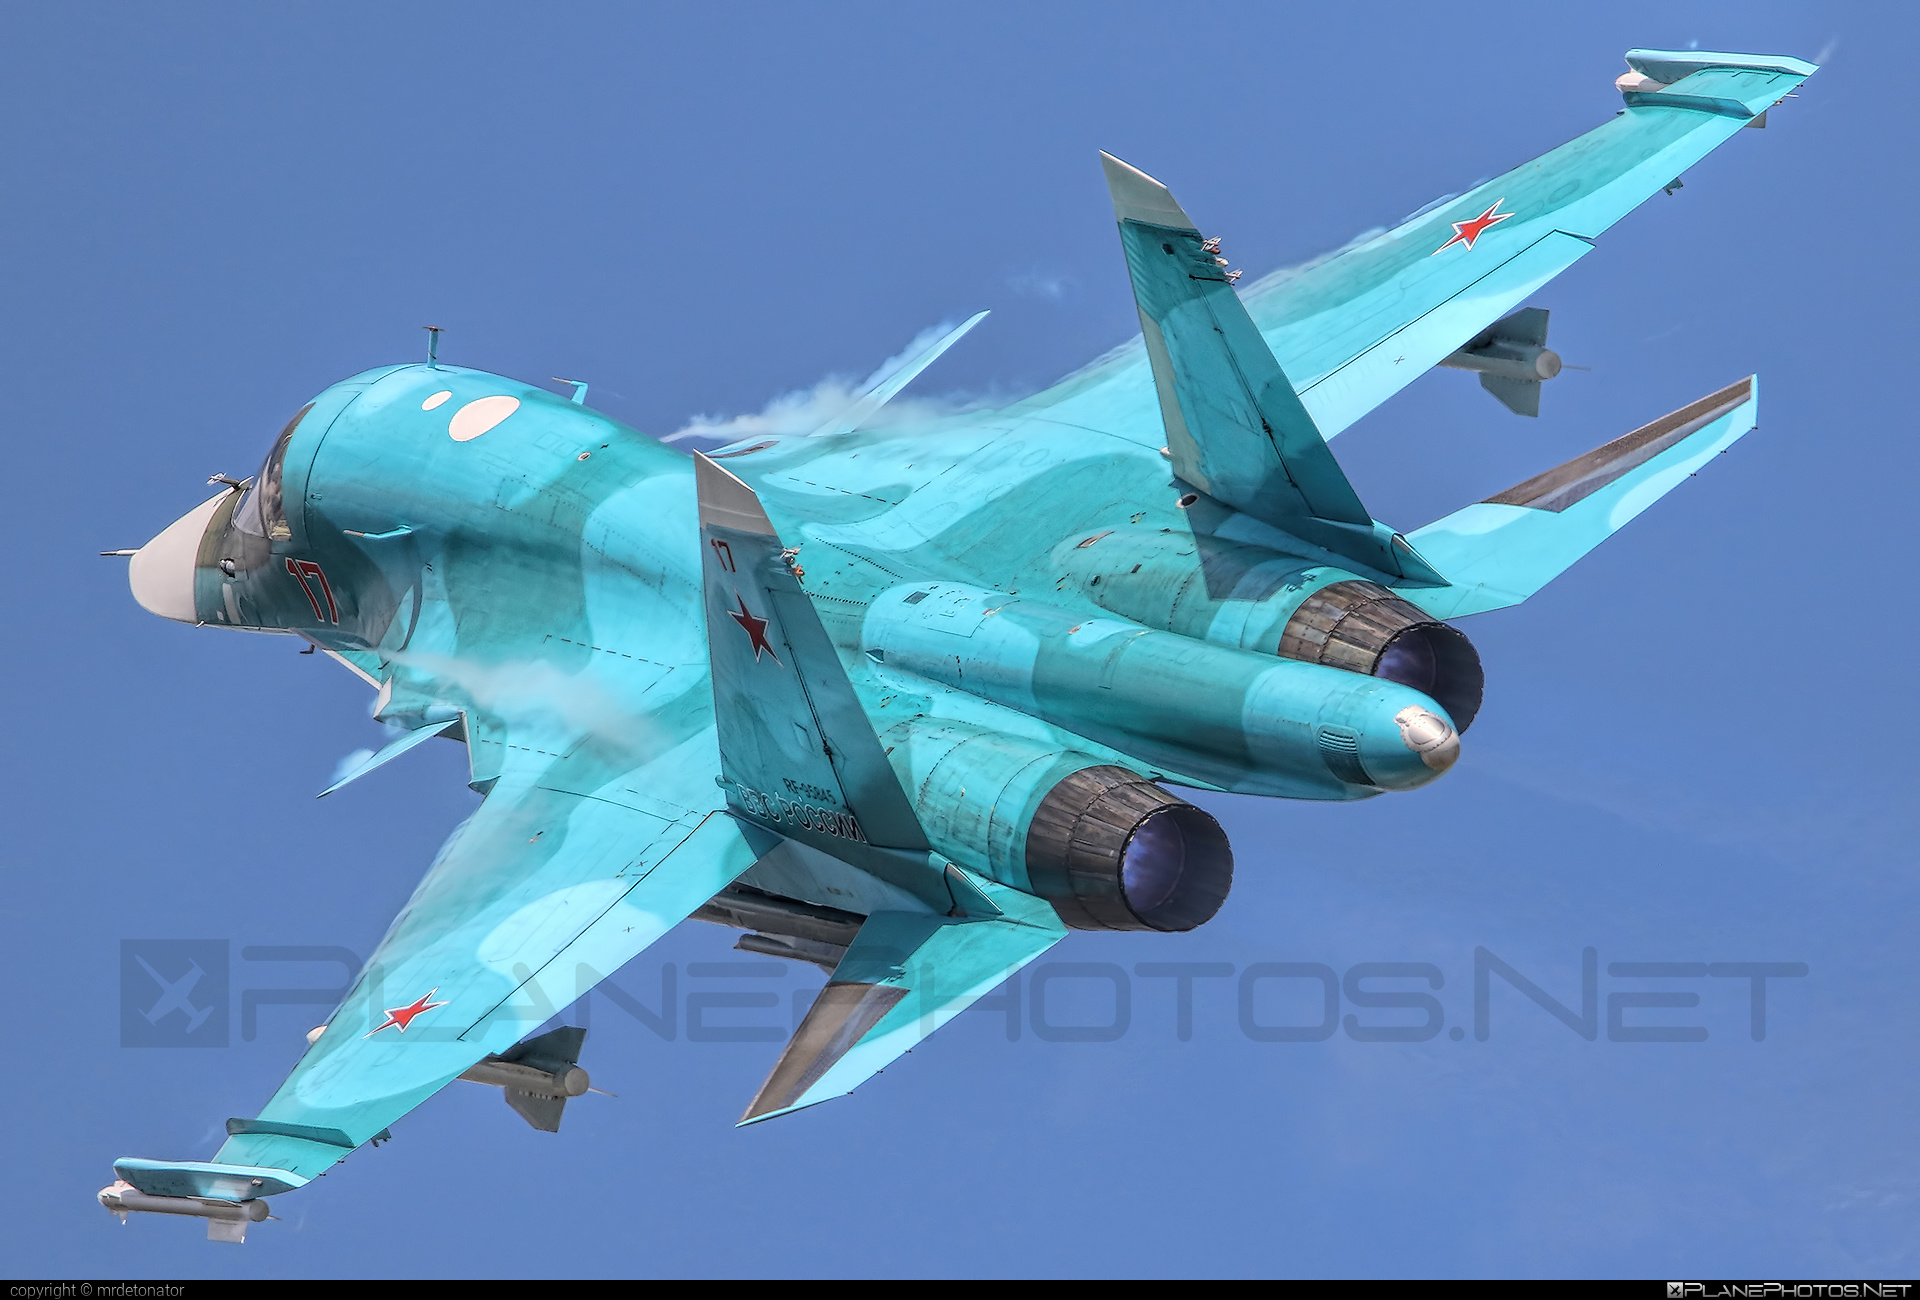 Sukhoi Su-34 - RF-95845 operated by Voyenno-vozdushnye sily Rossii (Russian Air Force) #sukhoi